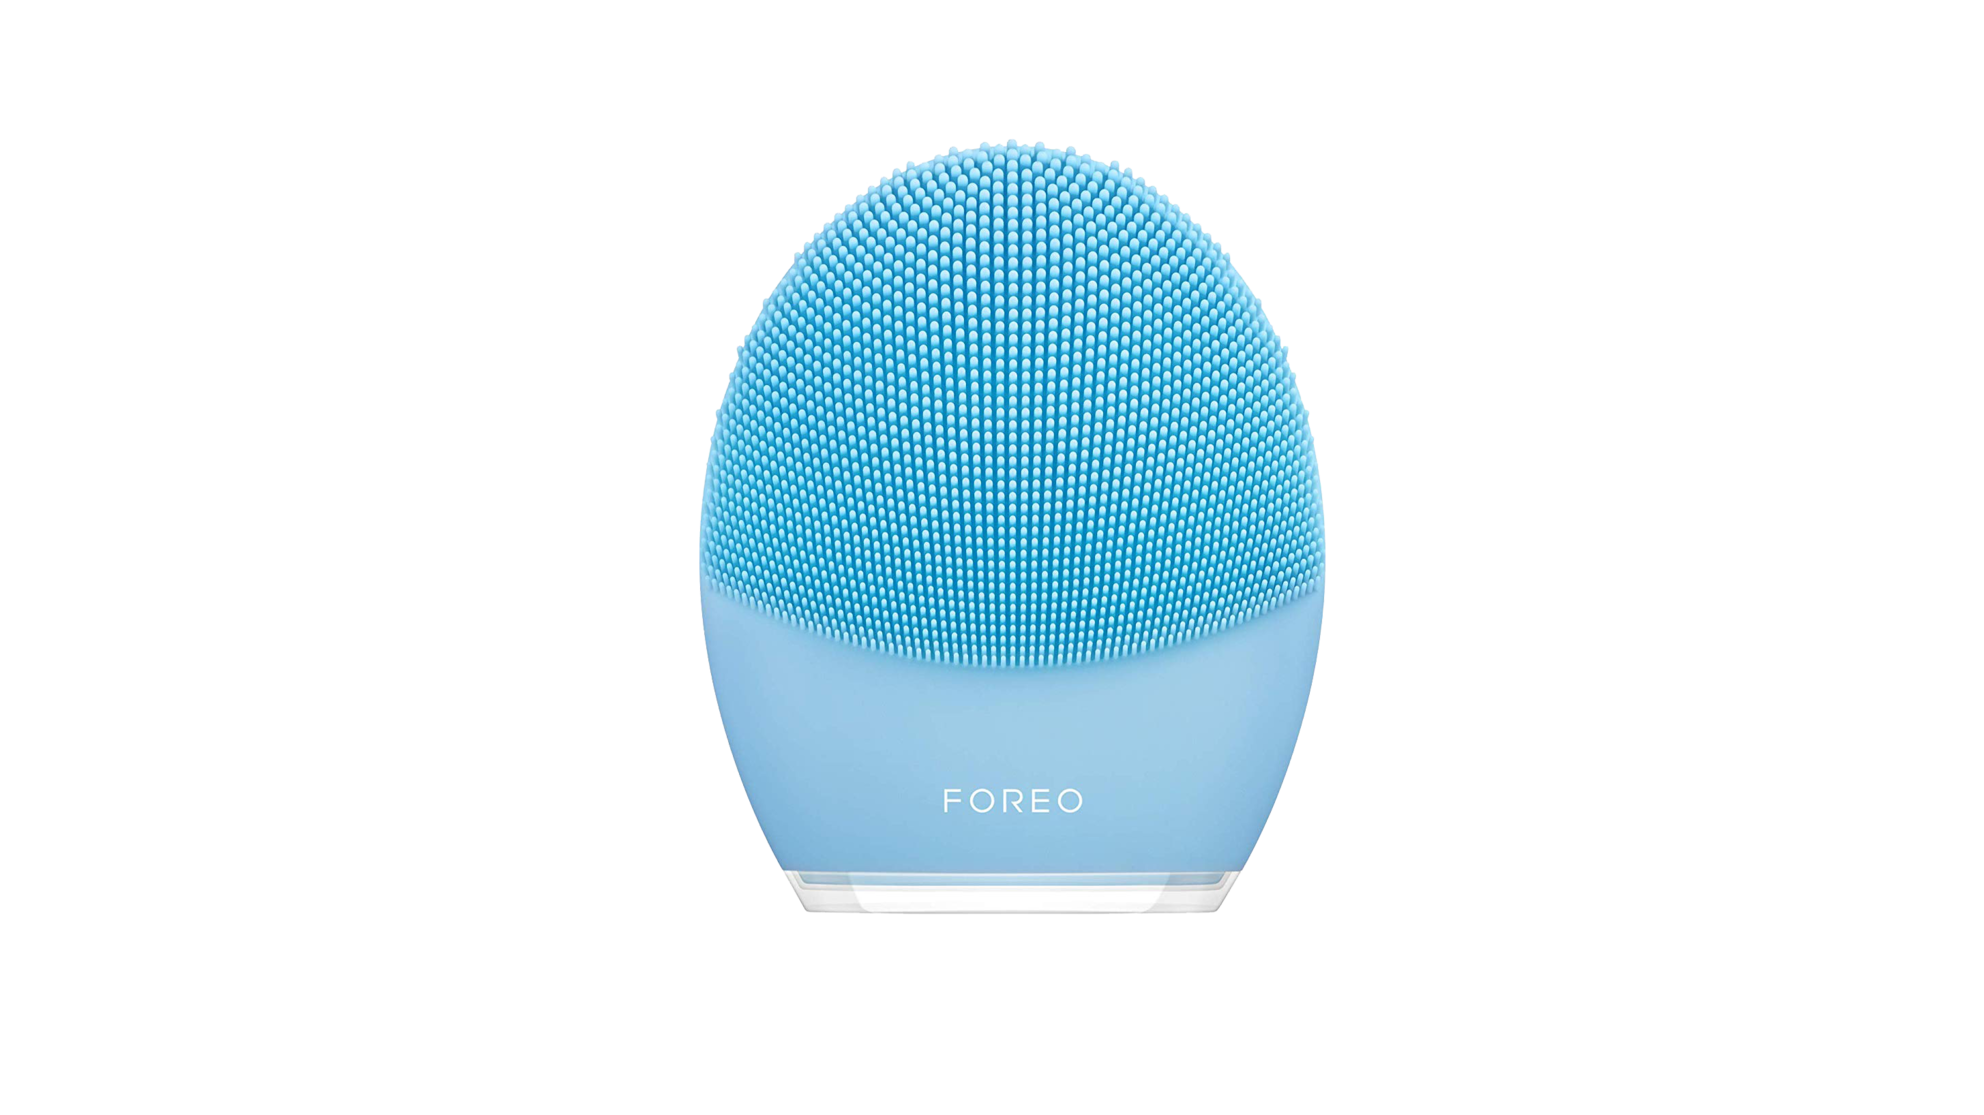 foreo-blue